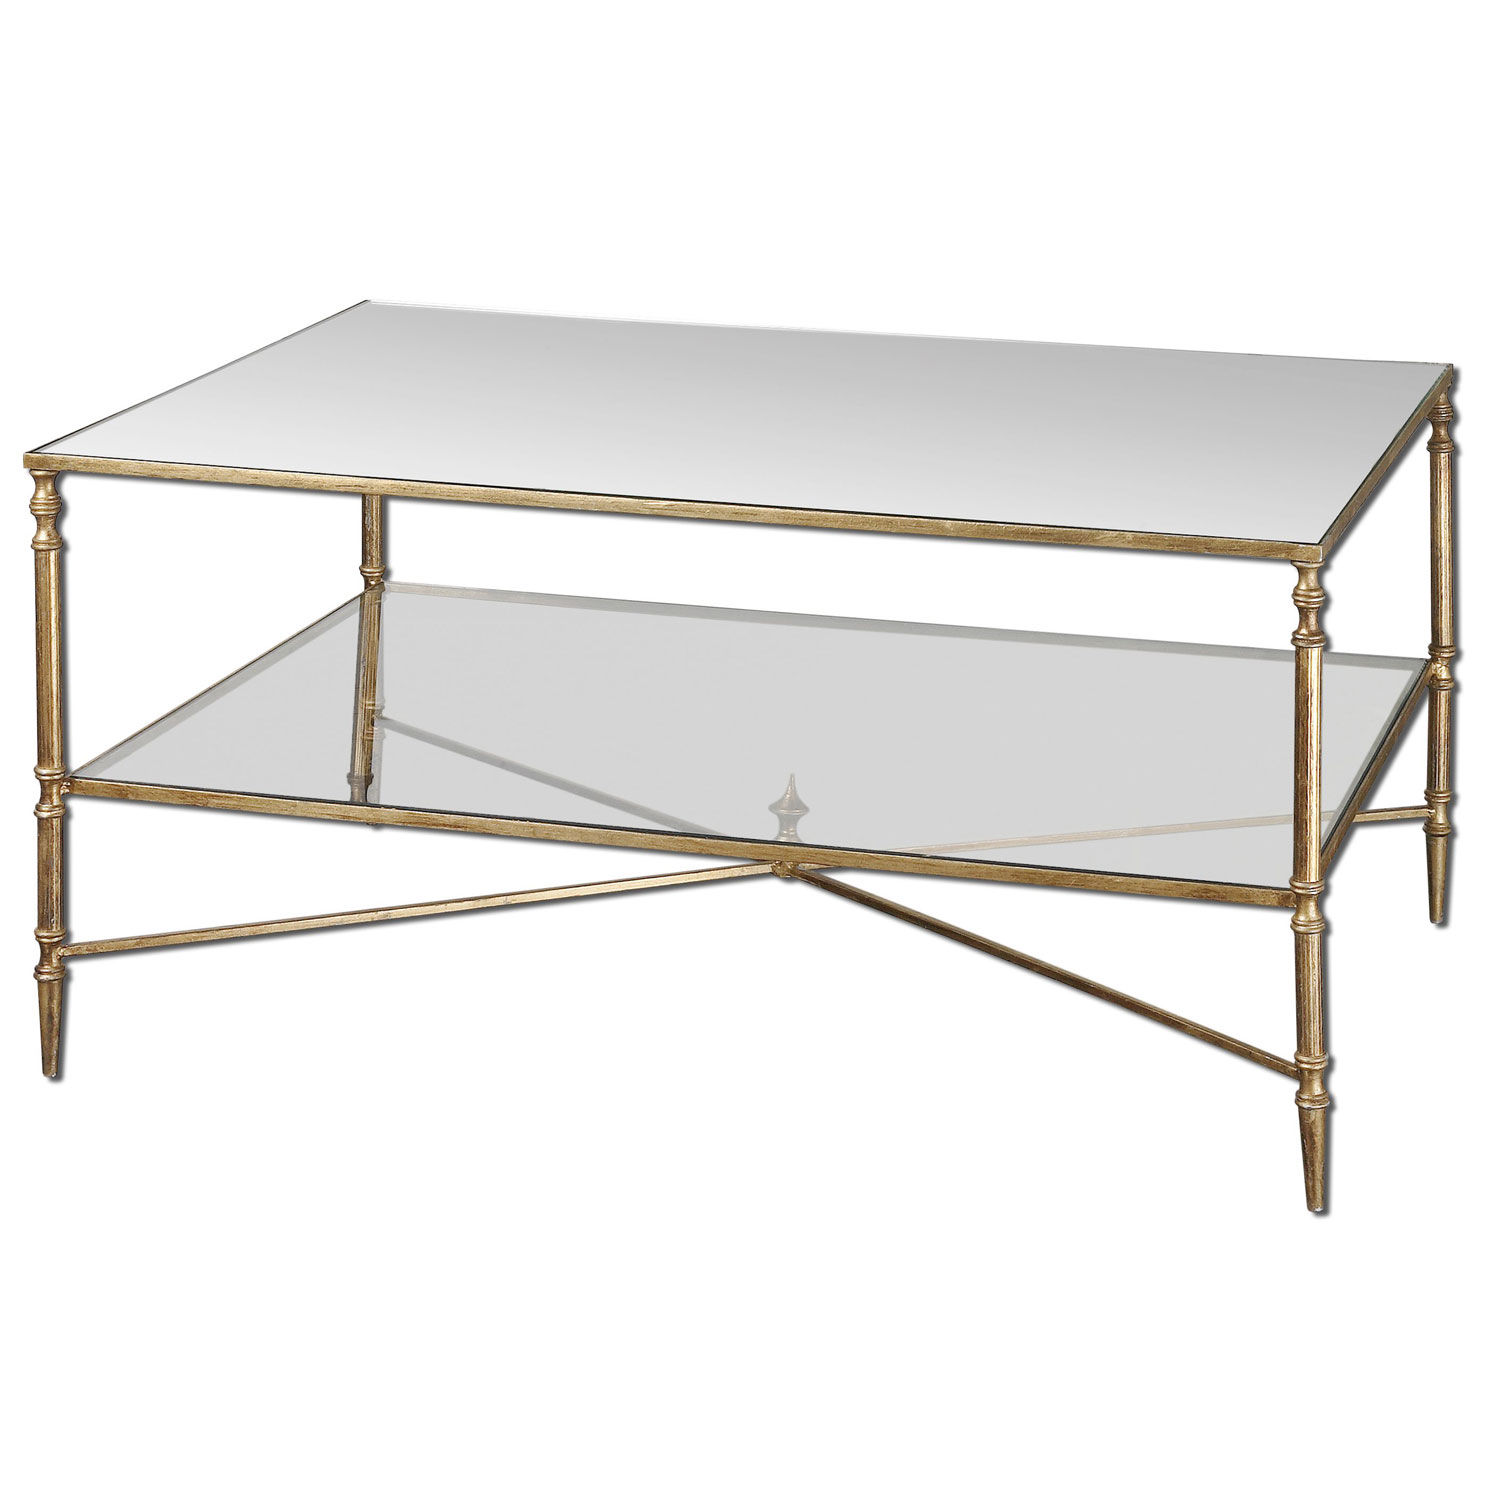 uttermost gold henzler coffee table bellacor accent with glass top hover zoom tables and canvas umbrella porch side mid century chair small metal bedside round silver modern